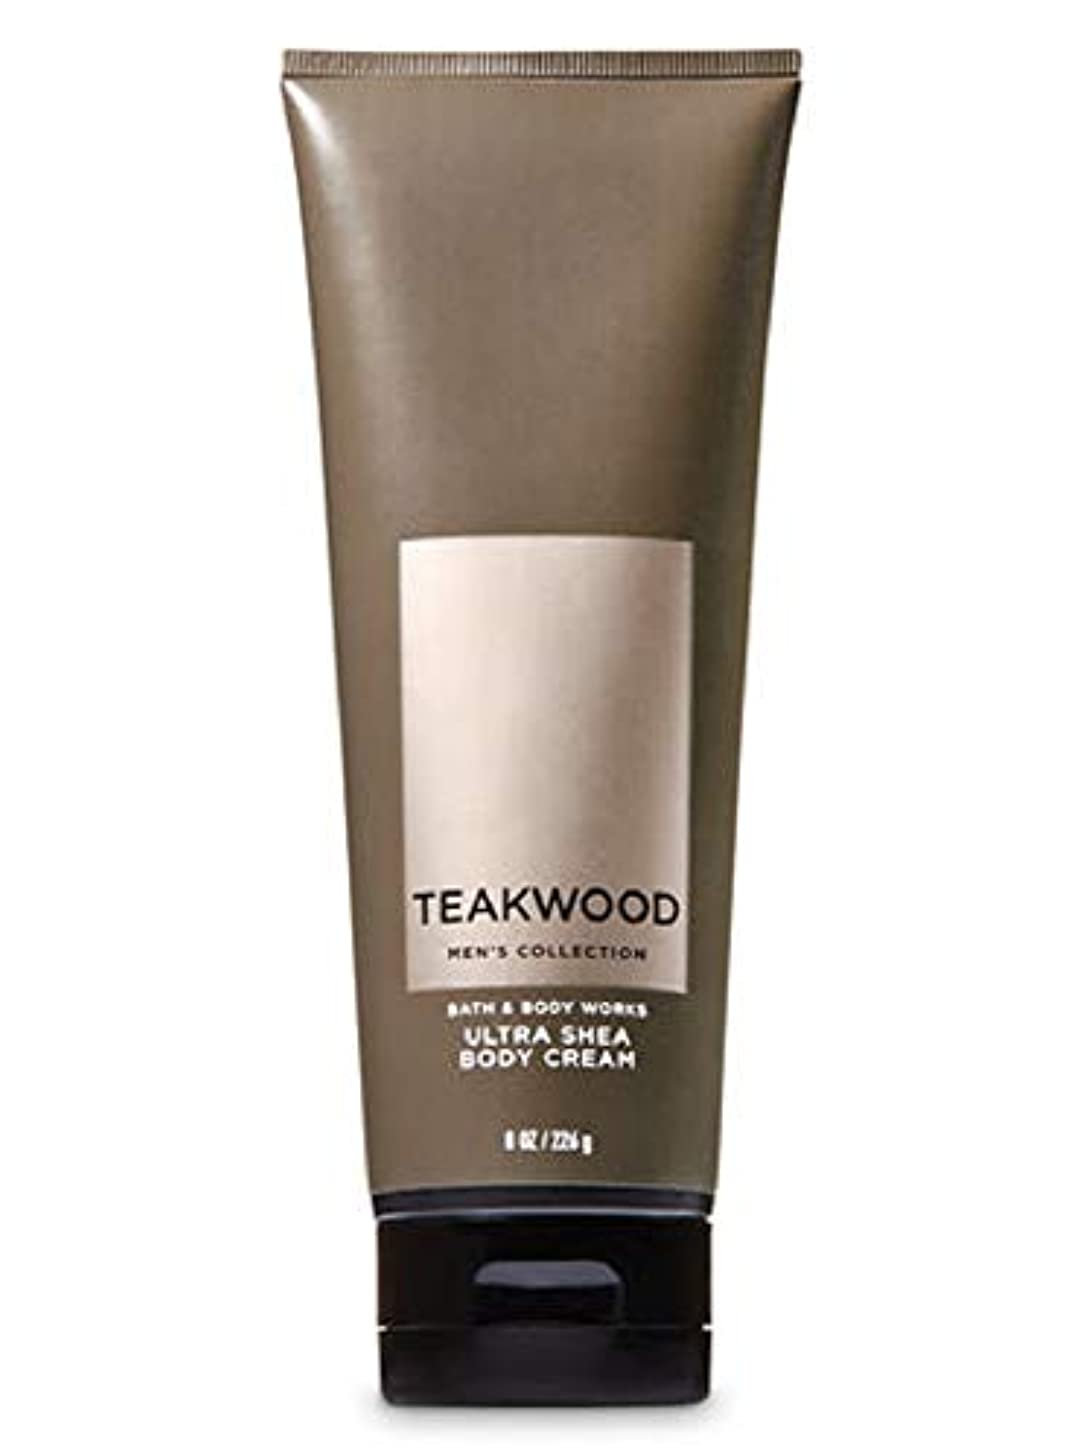 【並行輸入品】Bath & Body Works Men's Ultra Shea Body Cream in TEAKWOOD 226 g